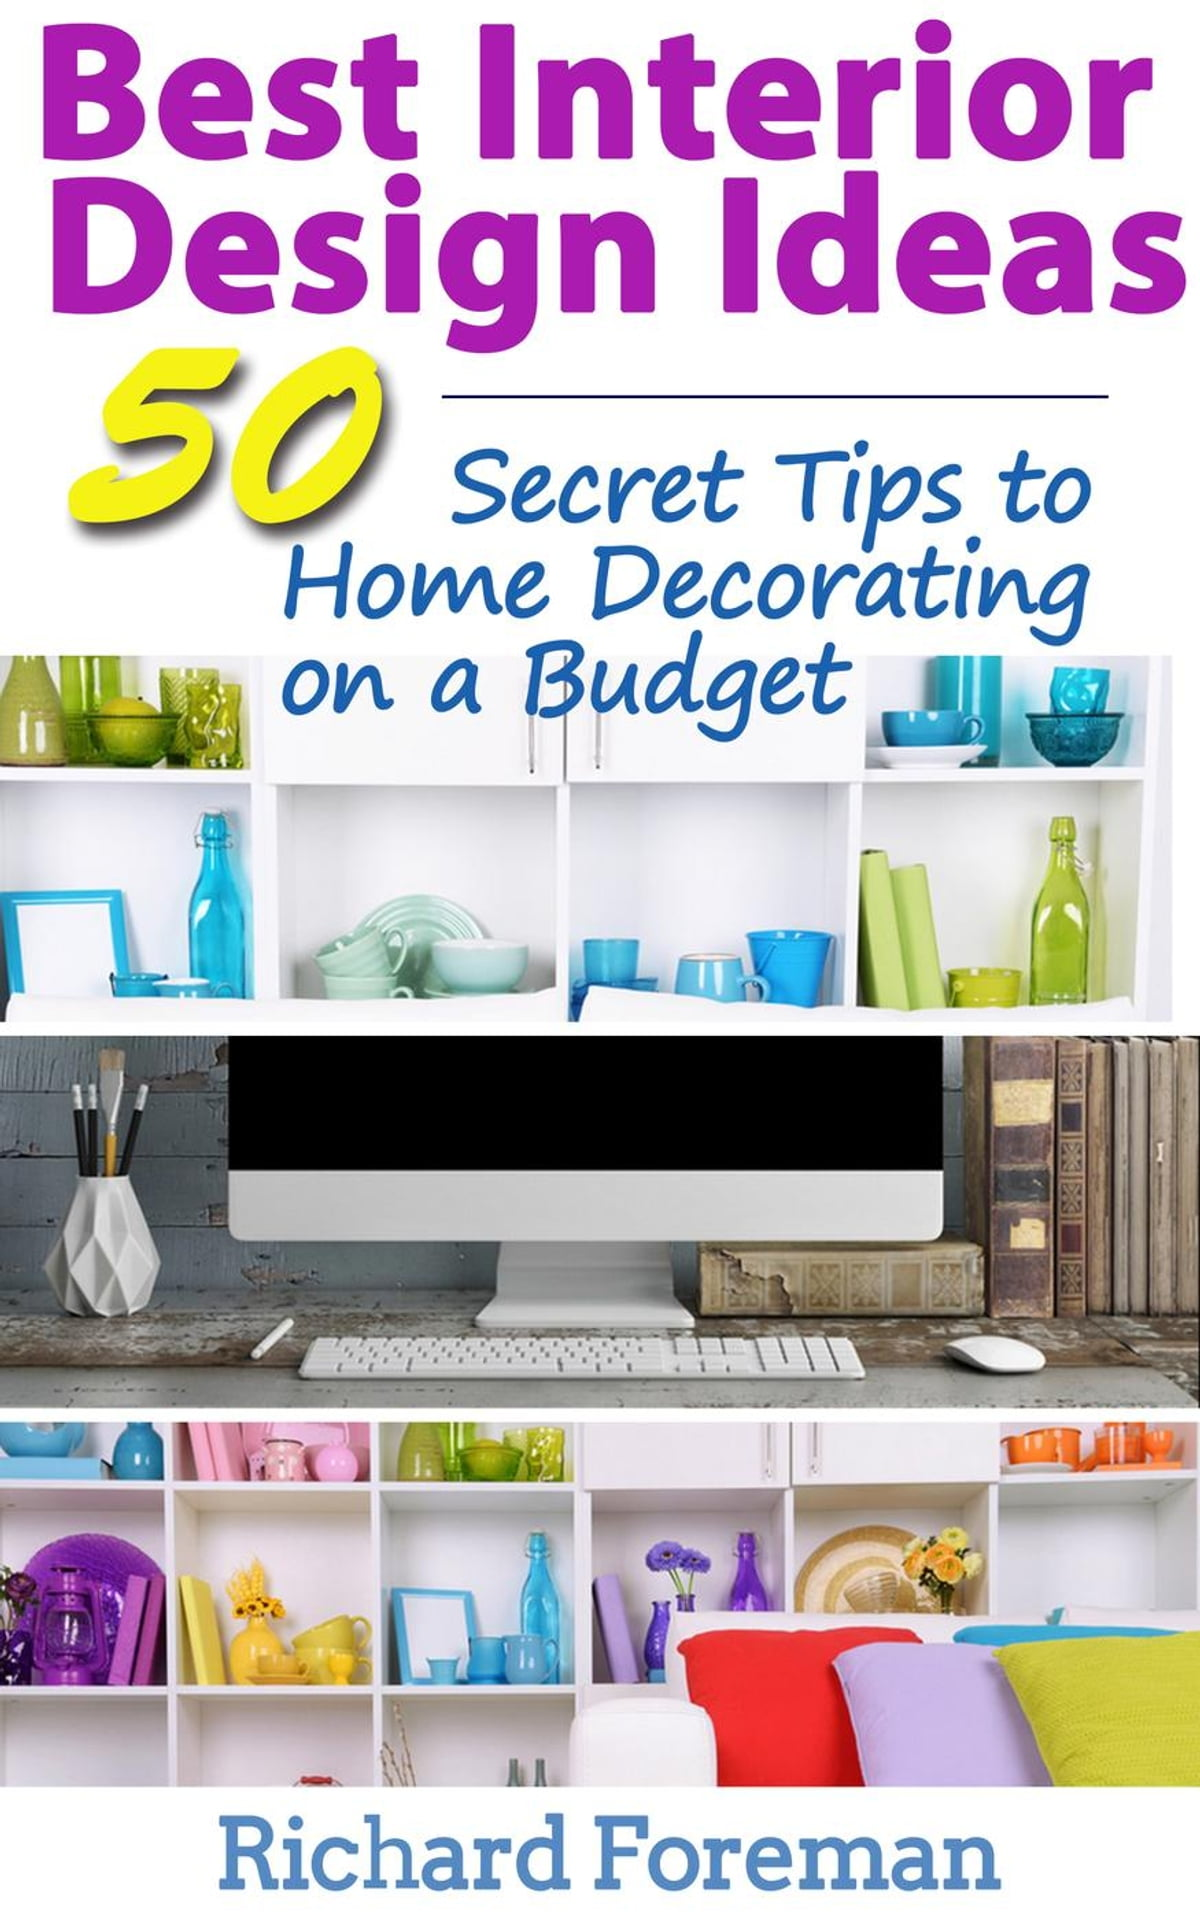 Best Interior Design Ideas : 50+ Secret Tips to Home Decorating on a Budget  (Complete Guide to Interior Designing) ebook by Richard Foreman - Rakuten  ...